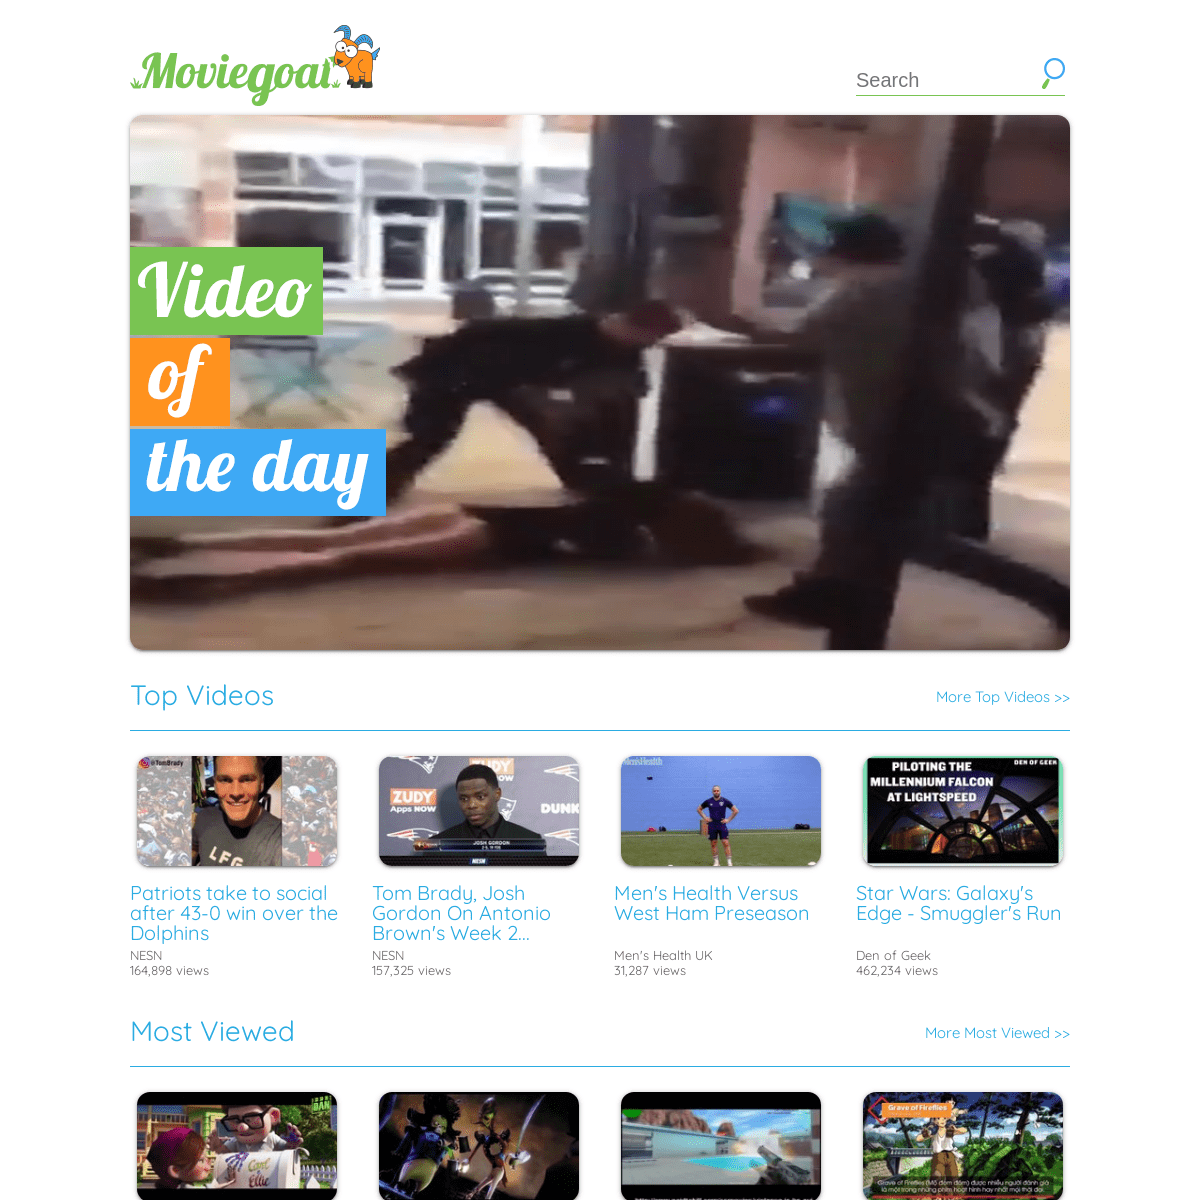 Moviegoat - Video Of The Day